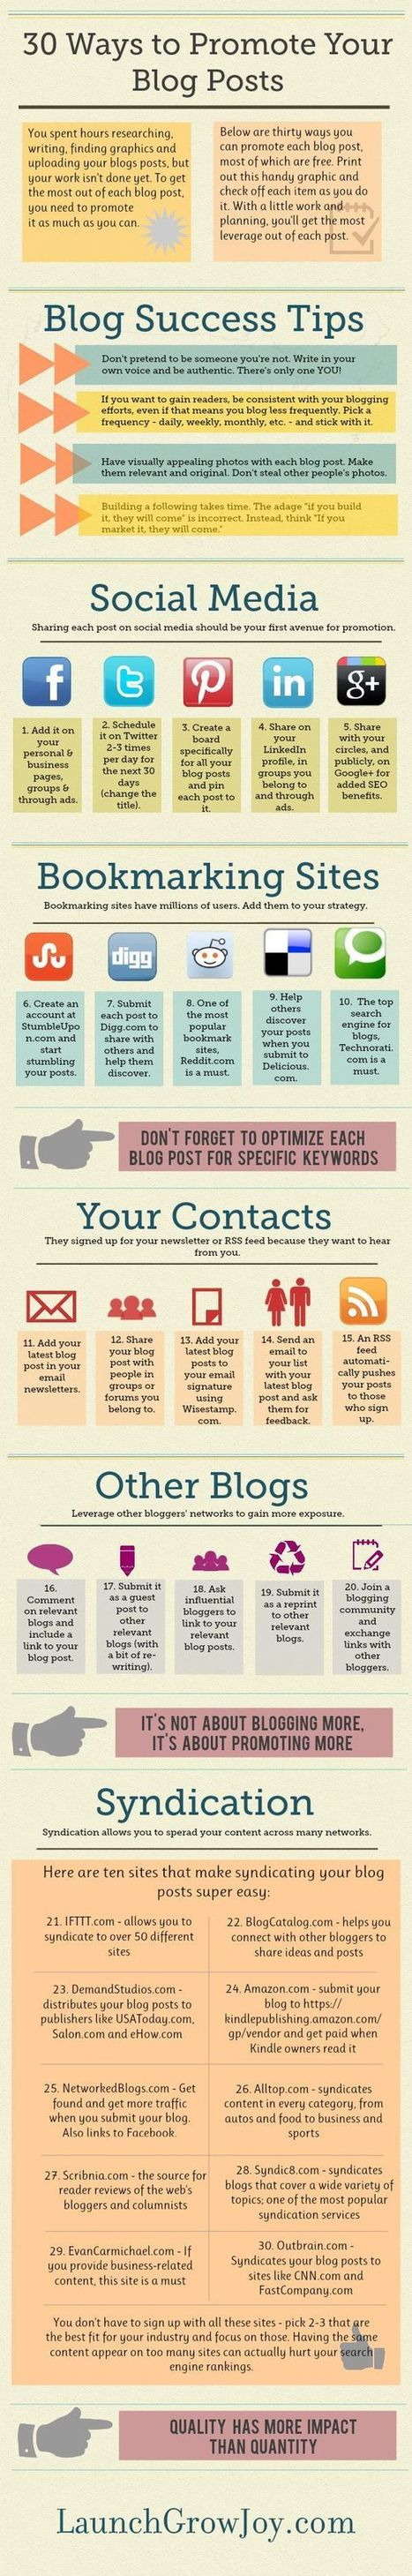 30 ways to promote your blog posts   Irresistible Content   Scoop.it